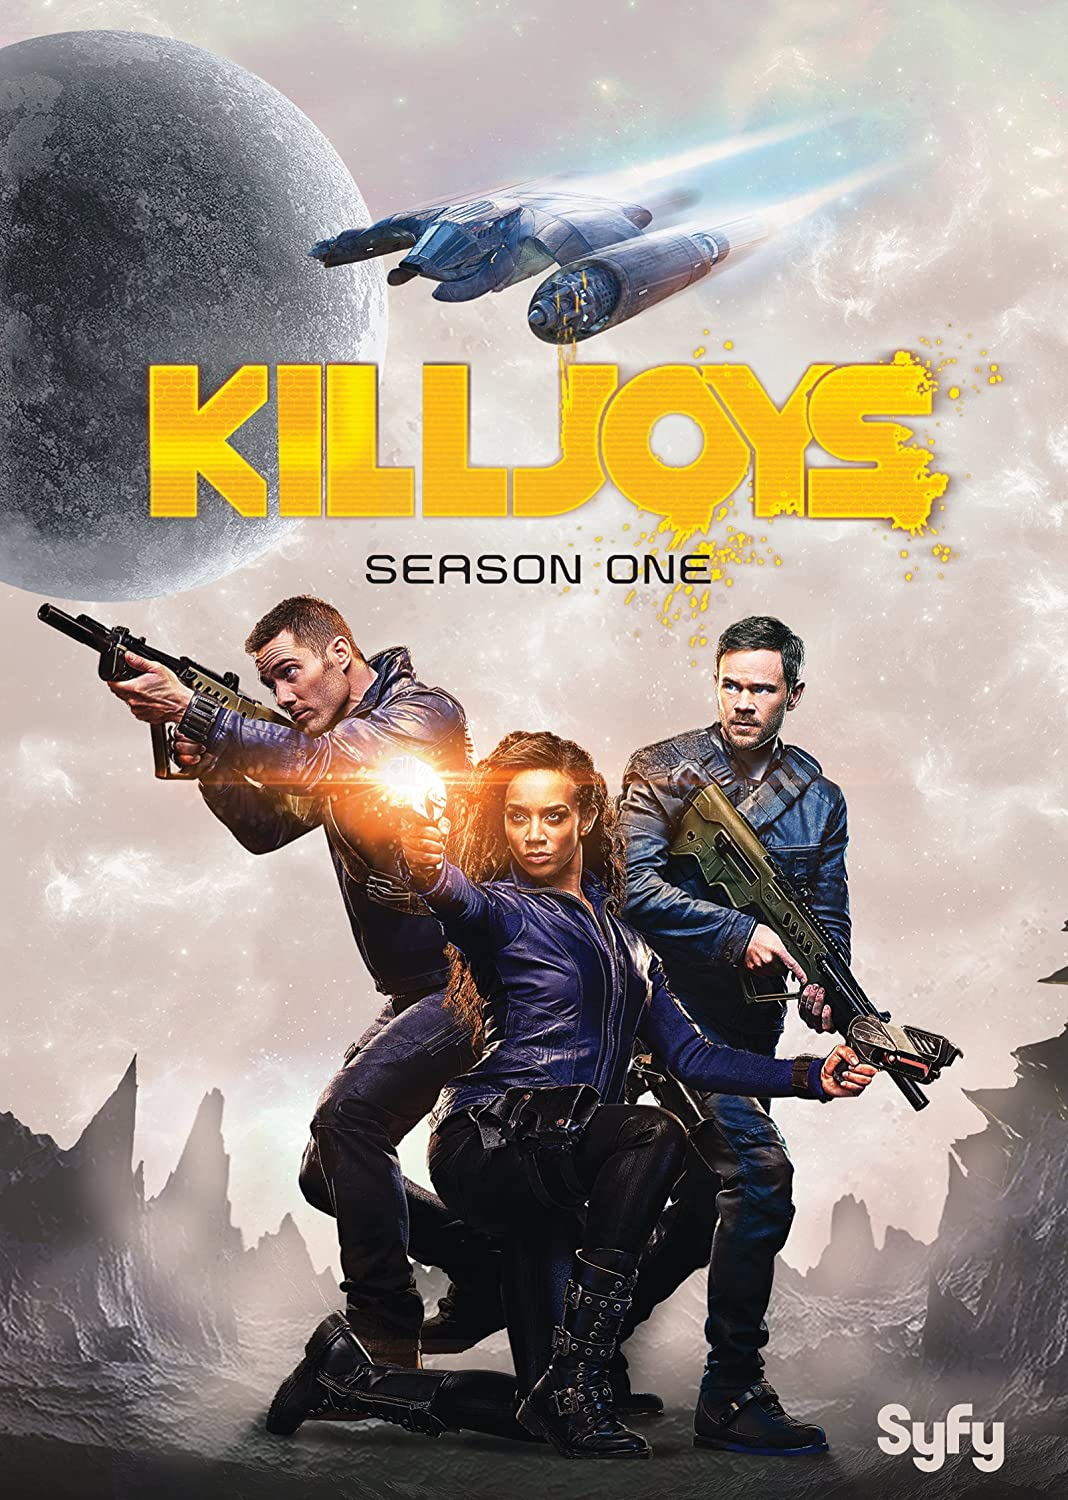 Killjoys Season One cover art: three science fiction bounty hunters stand with weapons ready.